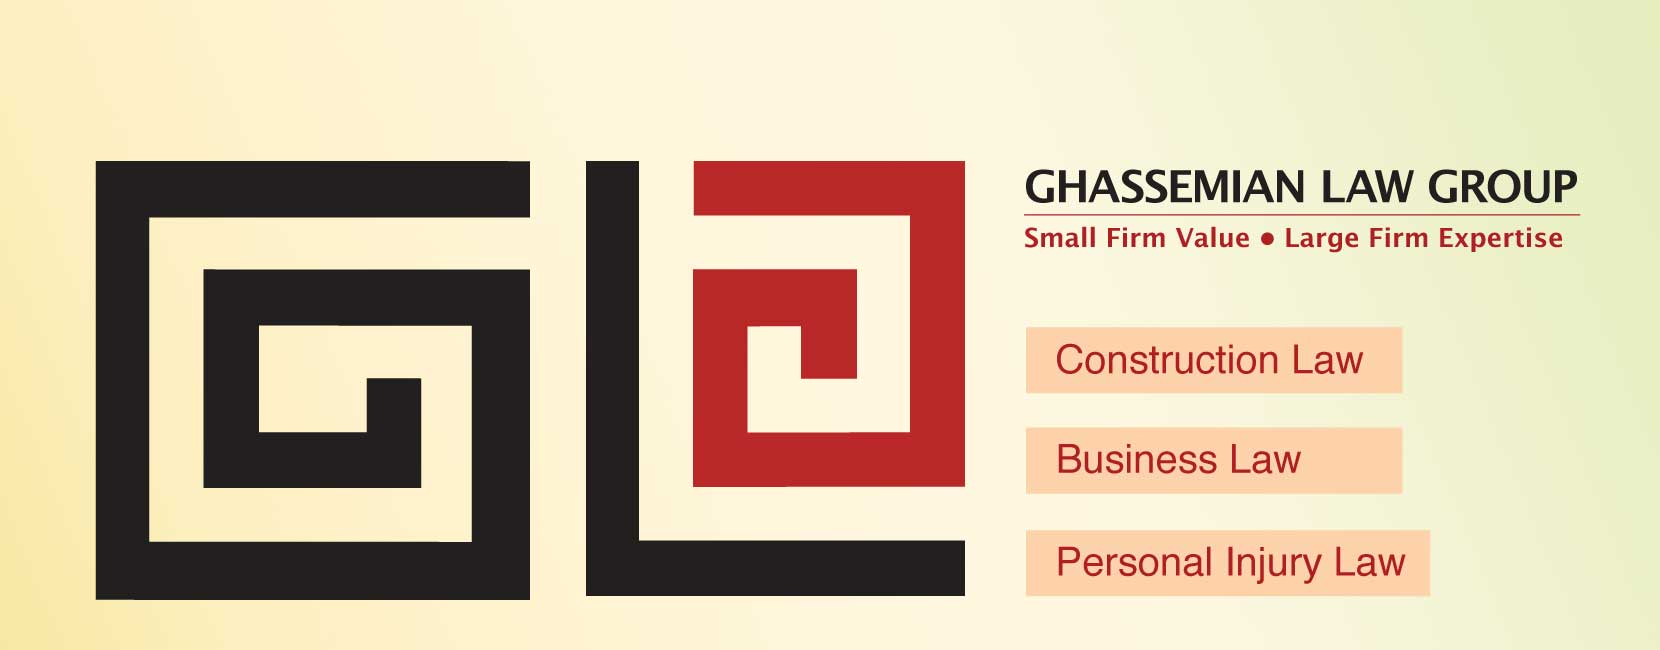 ghassemian-law-group-banner by Neo Design Concepts